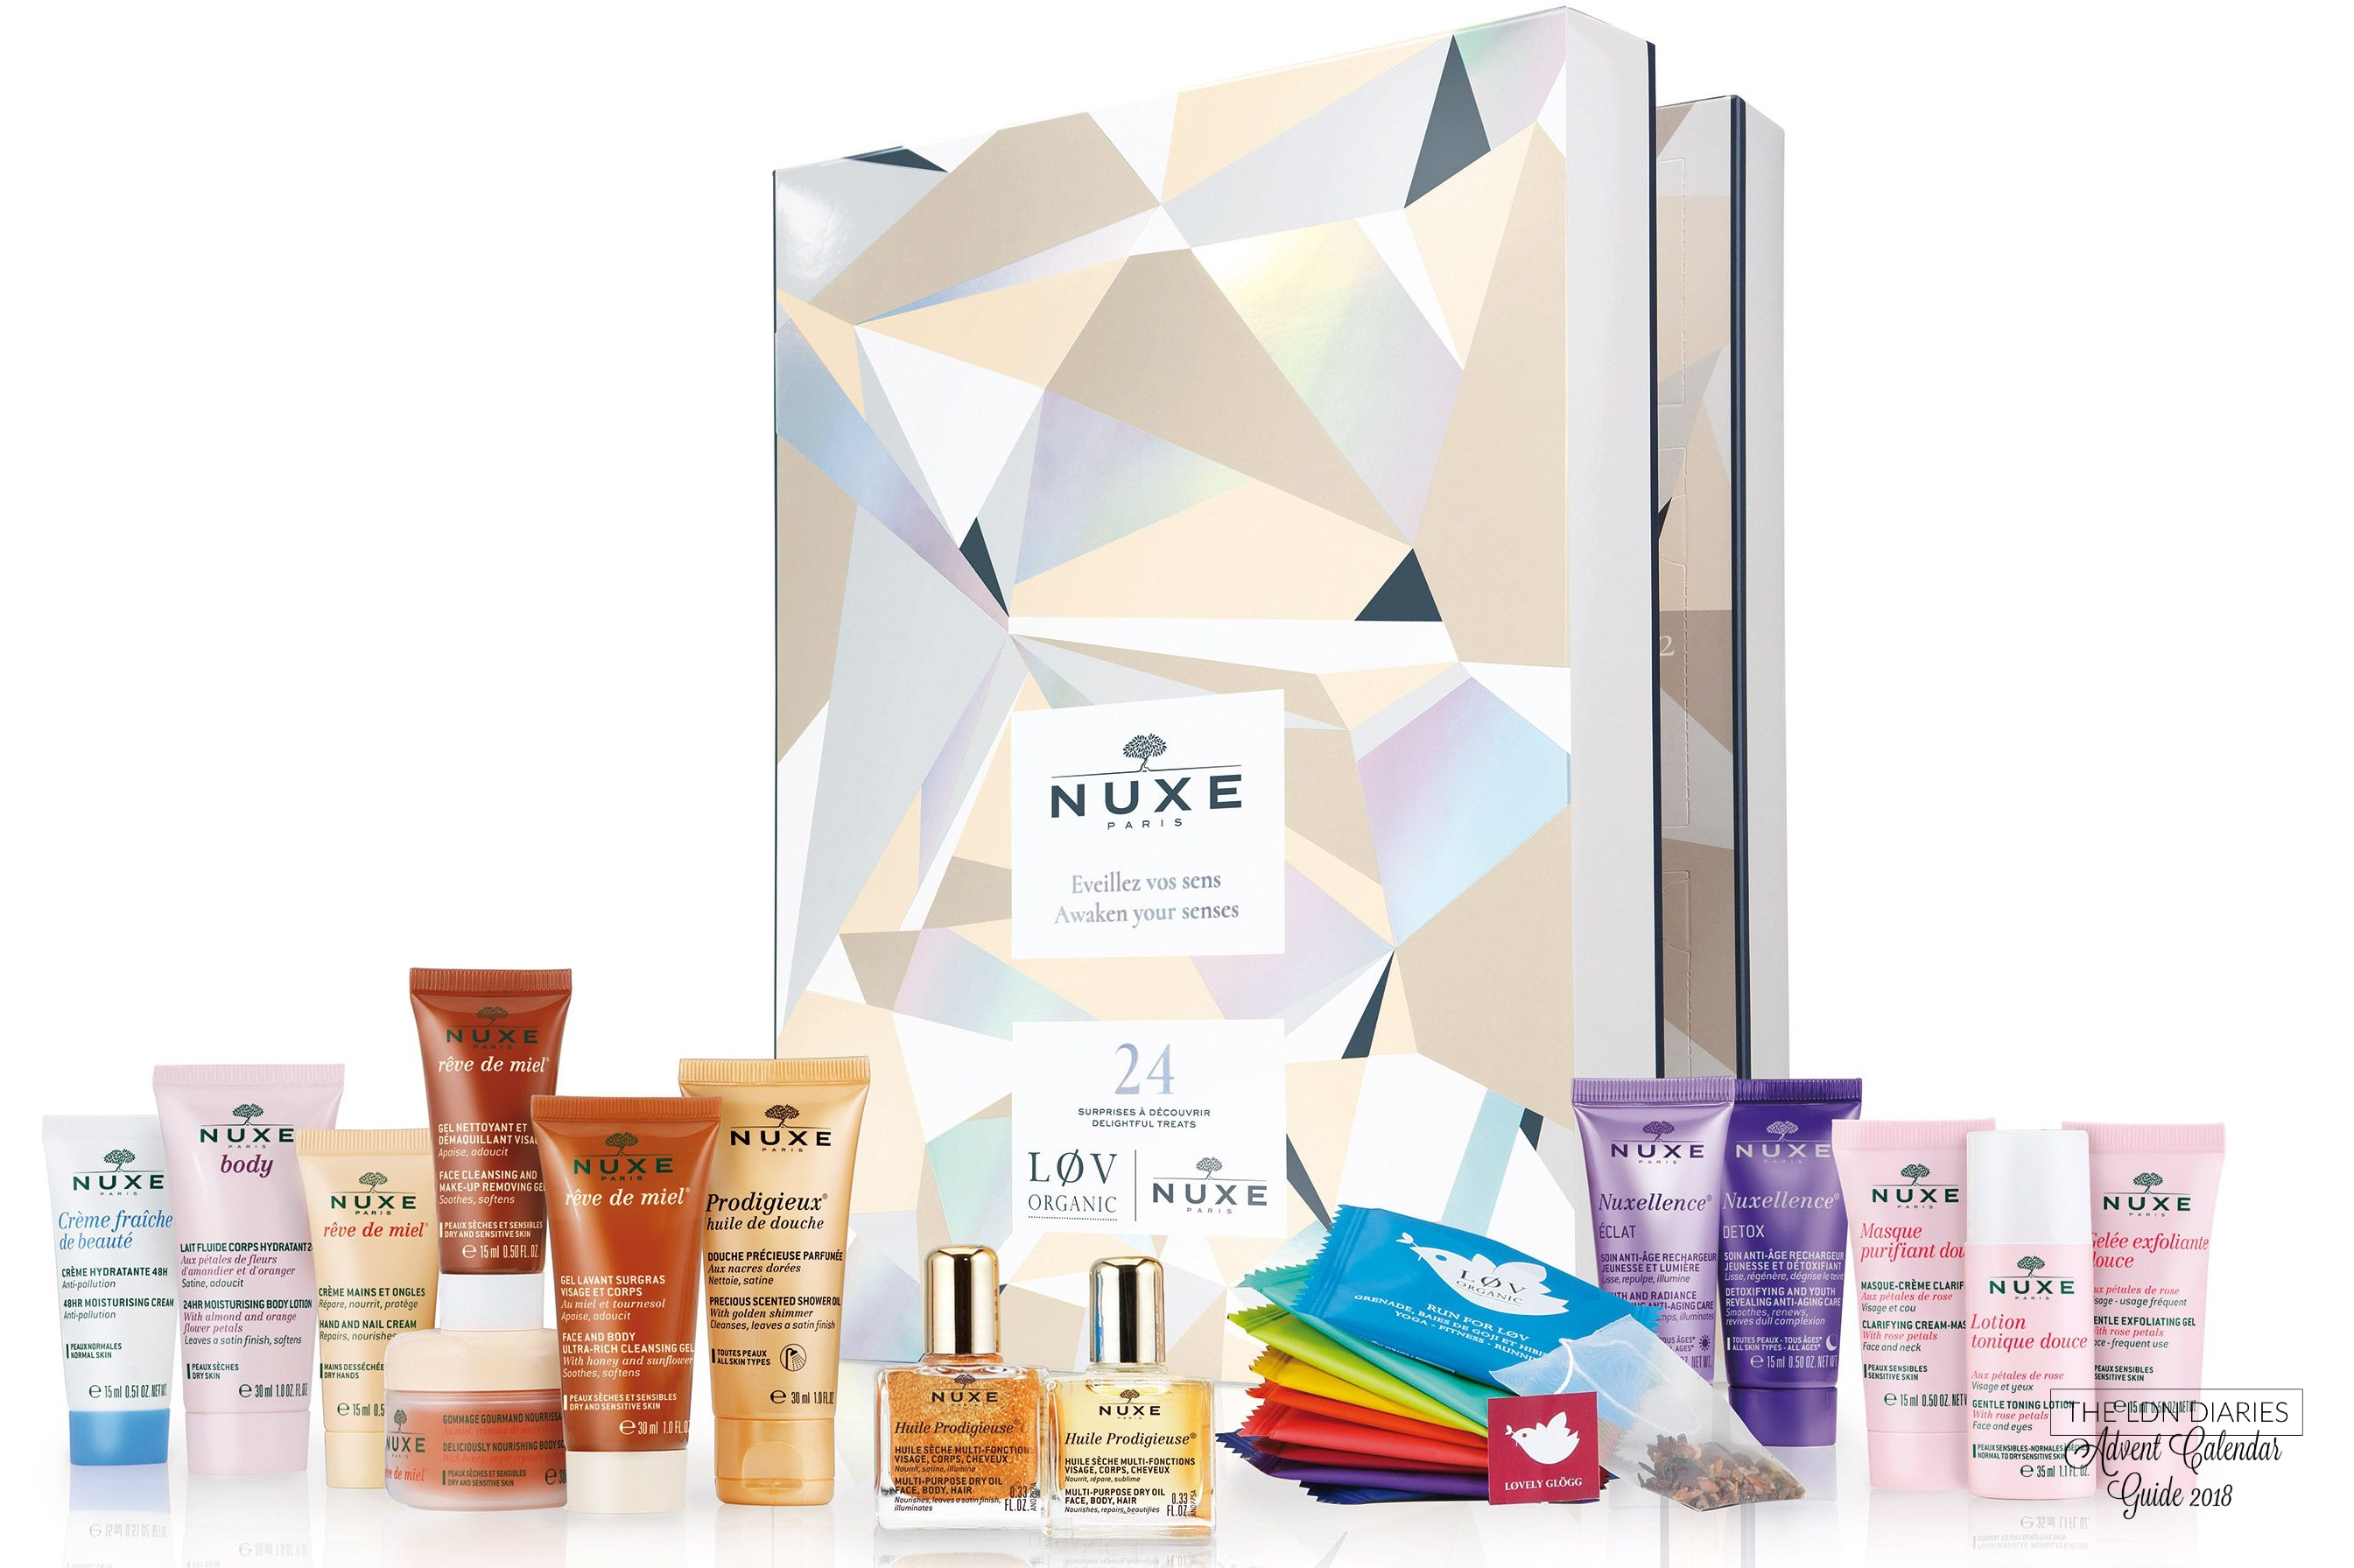 Nuxe Beauty Advent Calendar 2018 - The LDN Diaries